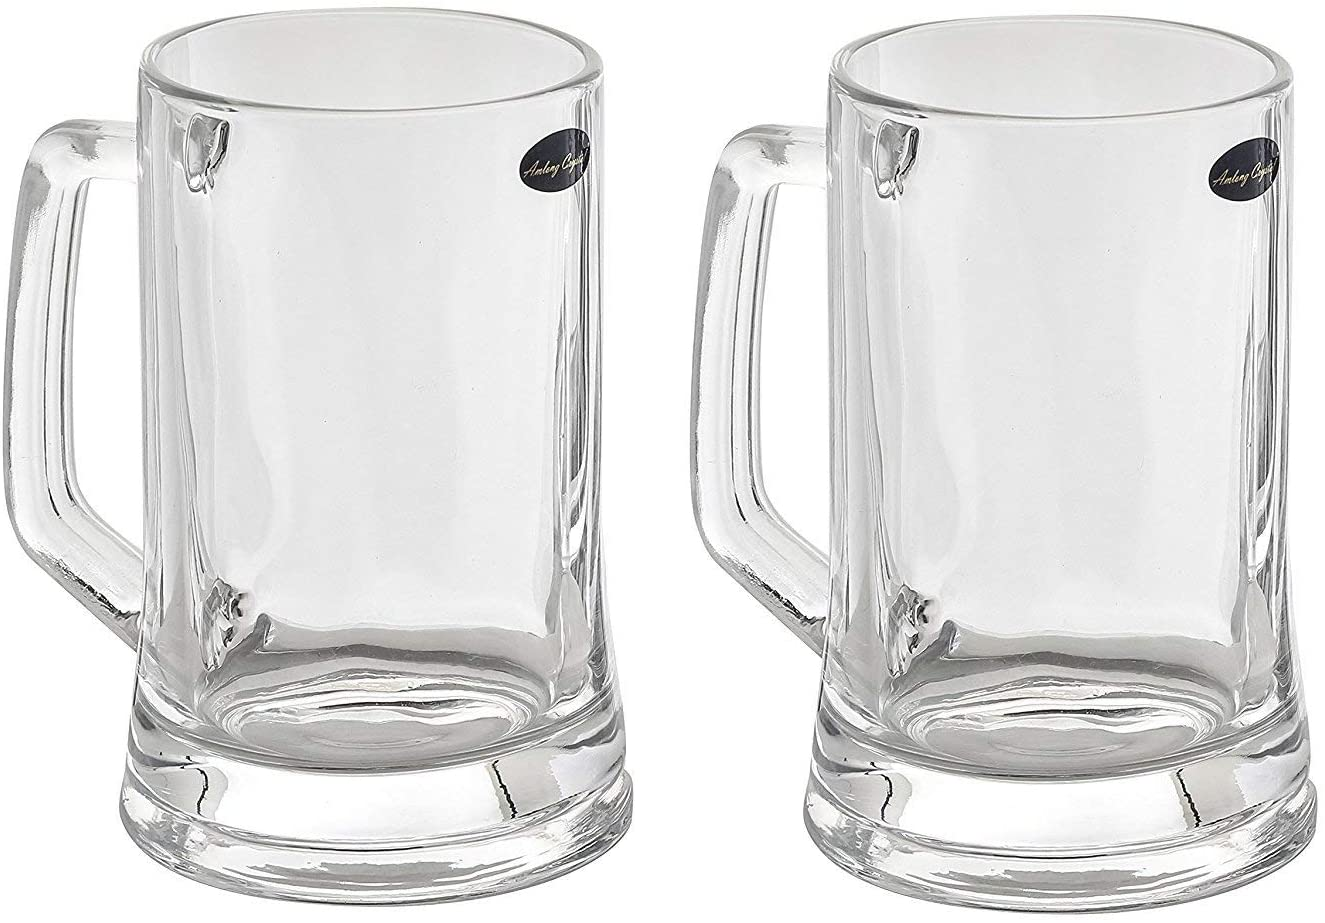 Amlong Crystal Lead-Free Beer Mug - 12 oz (Right For 1 Bottle), Set of 2